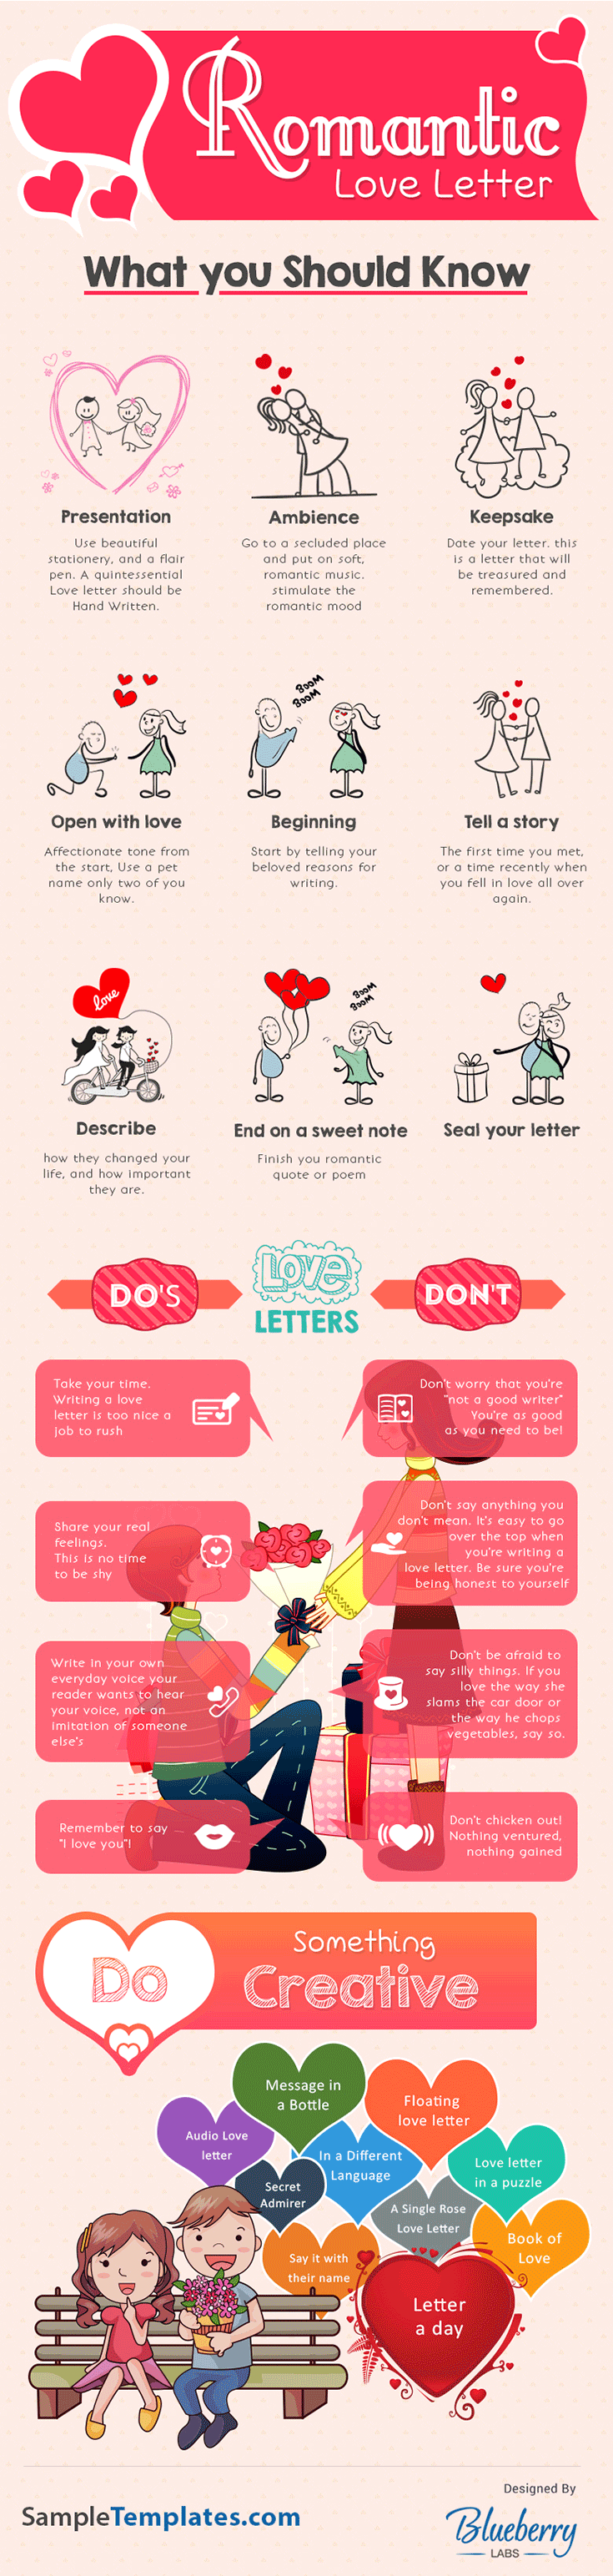 Wondering how to write a love letter to your sweetheart? Follow the tips on this infographic, and win your love's heart.